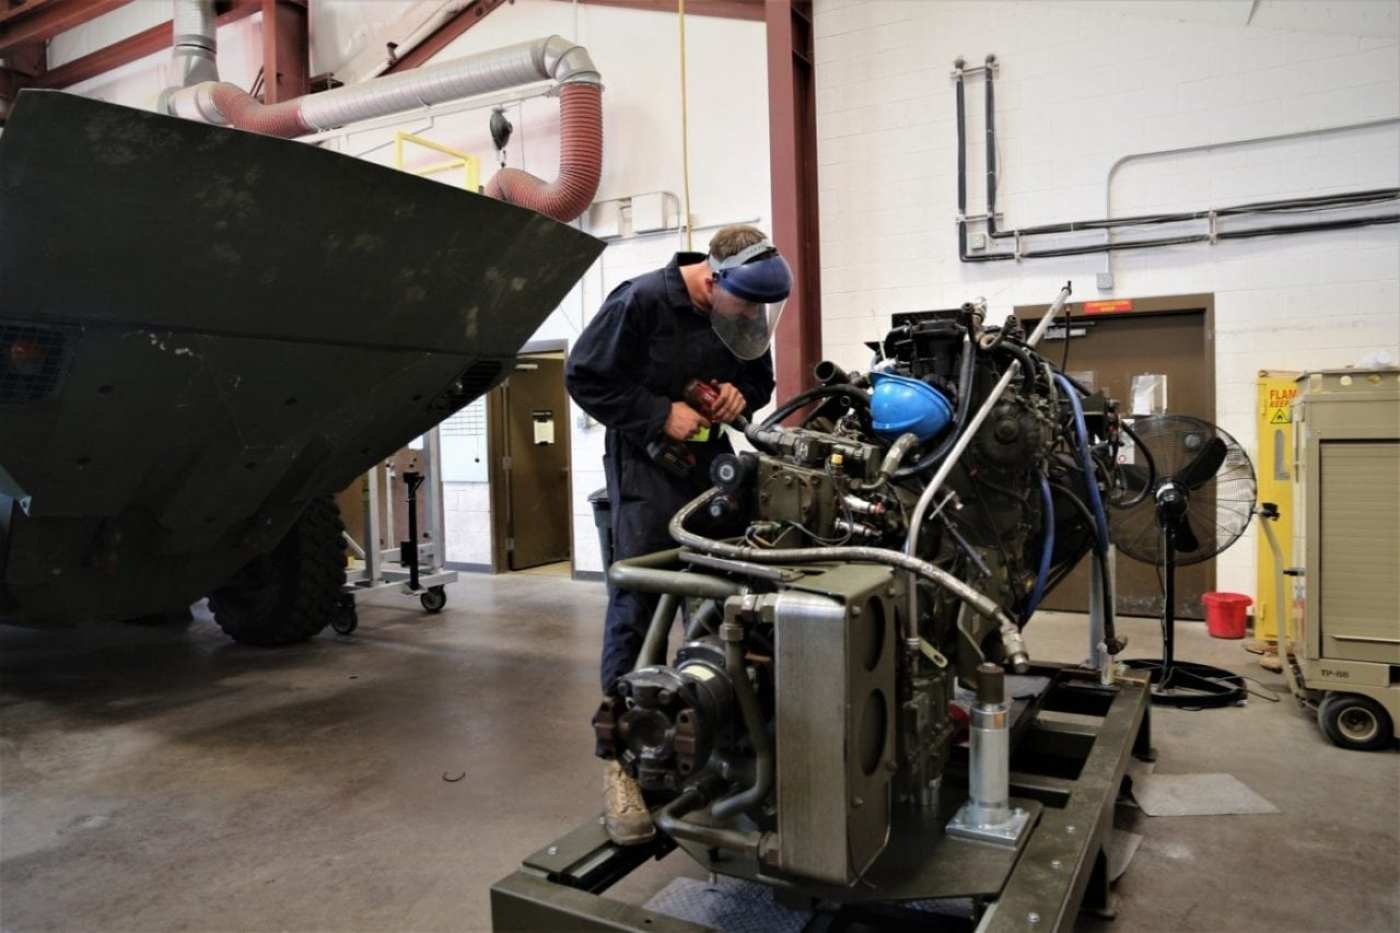 Sgt. Jarrod Warren performs preventative maintenance checks and services on an engine of the Amphibious Combat Vehicle during the logistics demonstration on Sept. 10, 2019, at Camp Pendleton, California. Log Demo is designed to evaluate and correct, if needed, the maintenance and operational manuals for the ACV that will be eventually used by fleet Marines. (U.S. Marine Corps photo by Ashley Calingo)